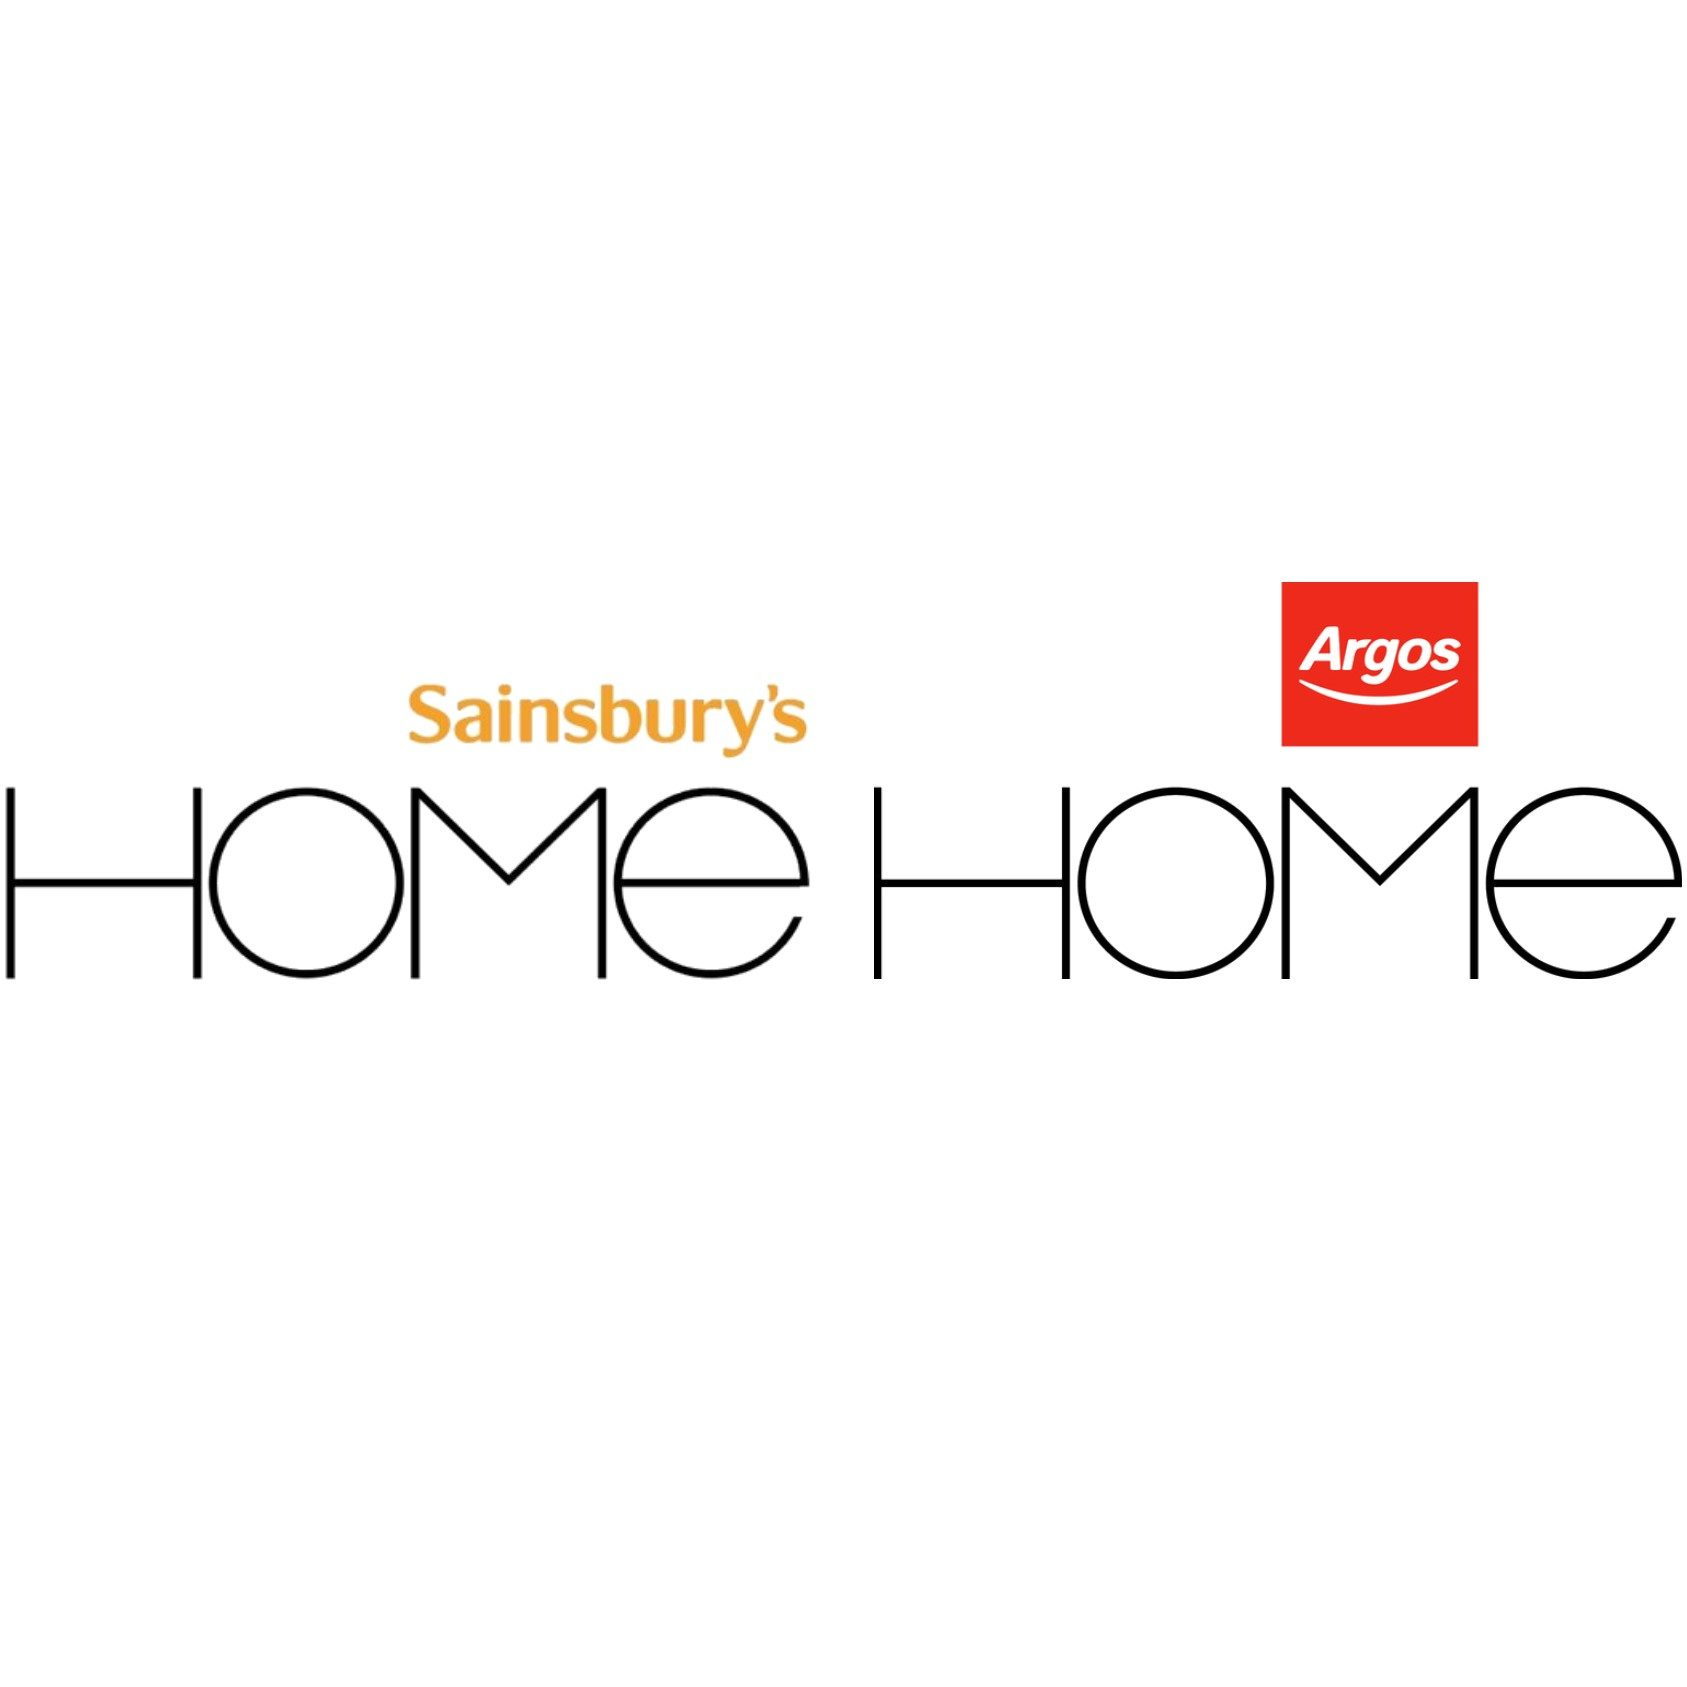 Sainsbury's Argos Home